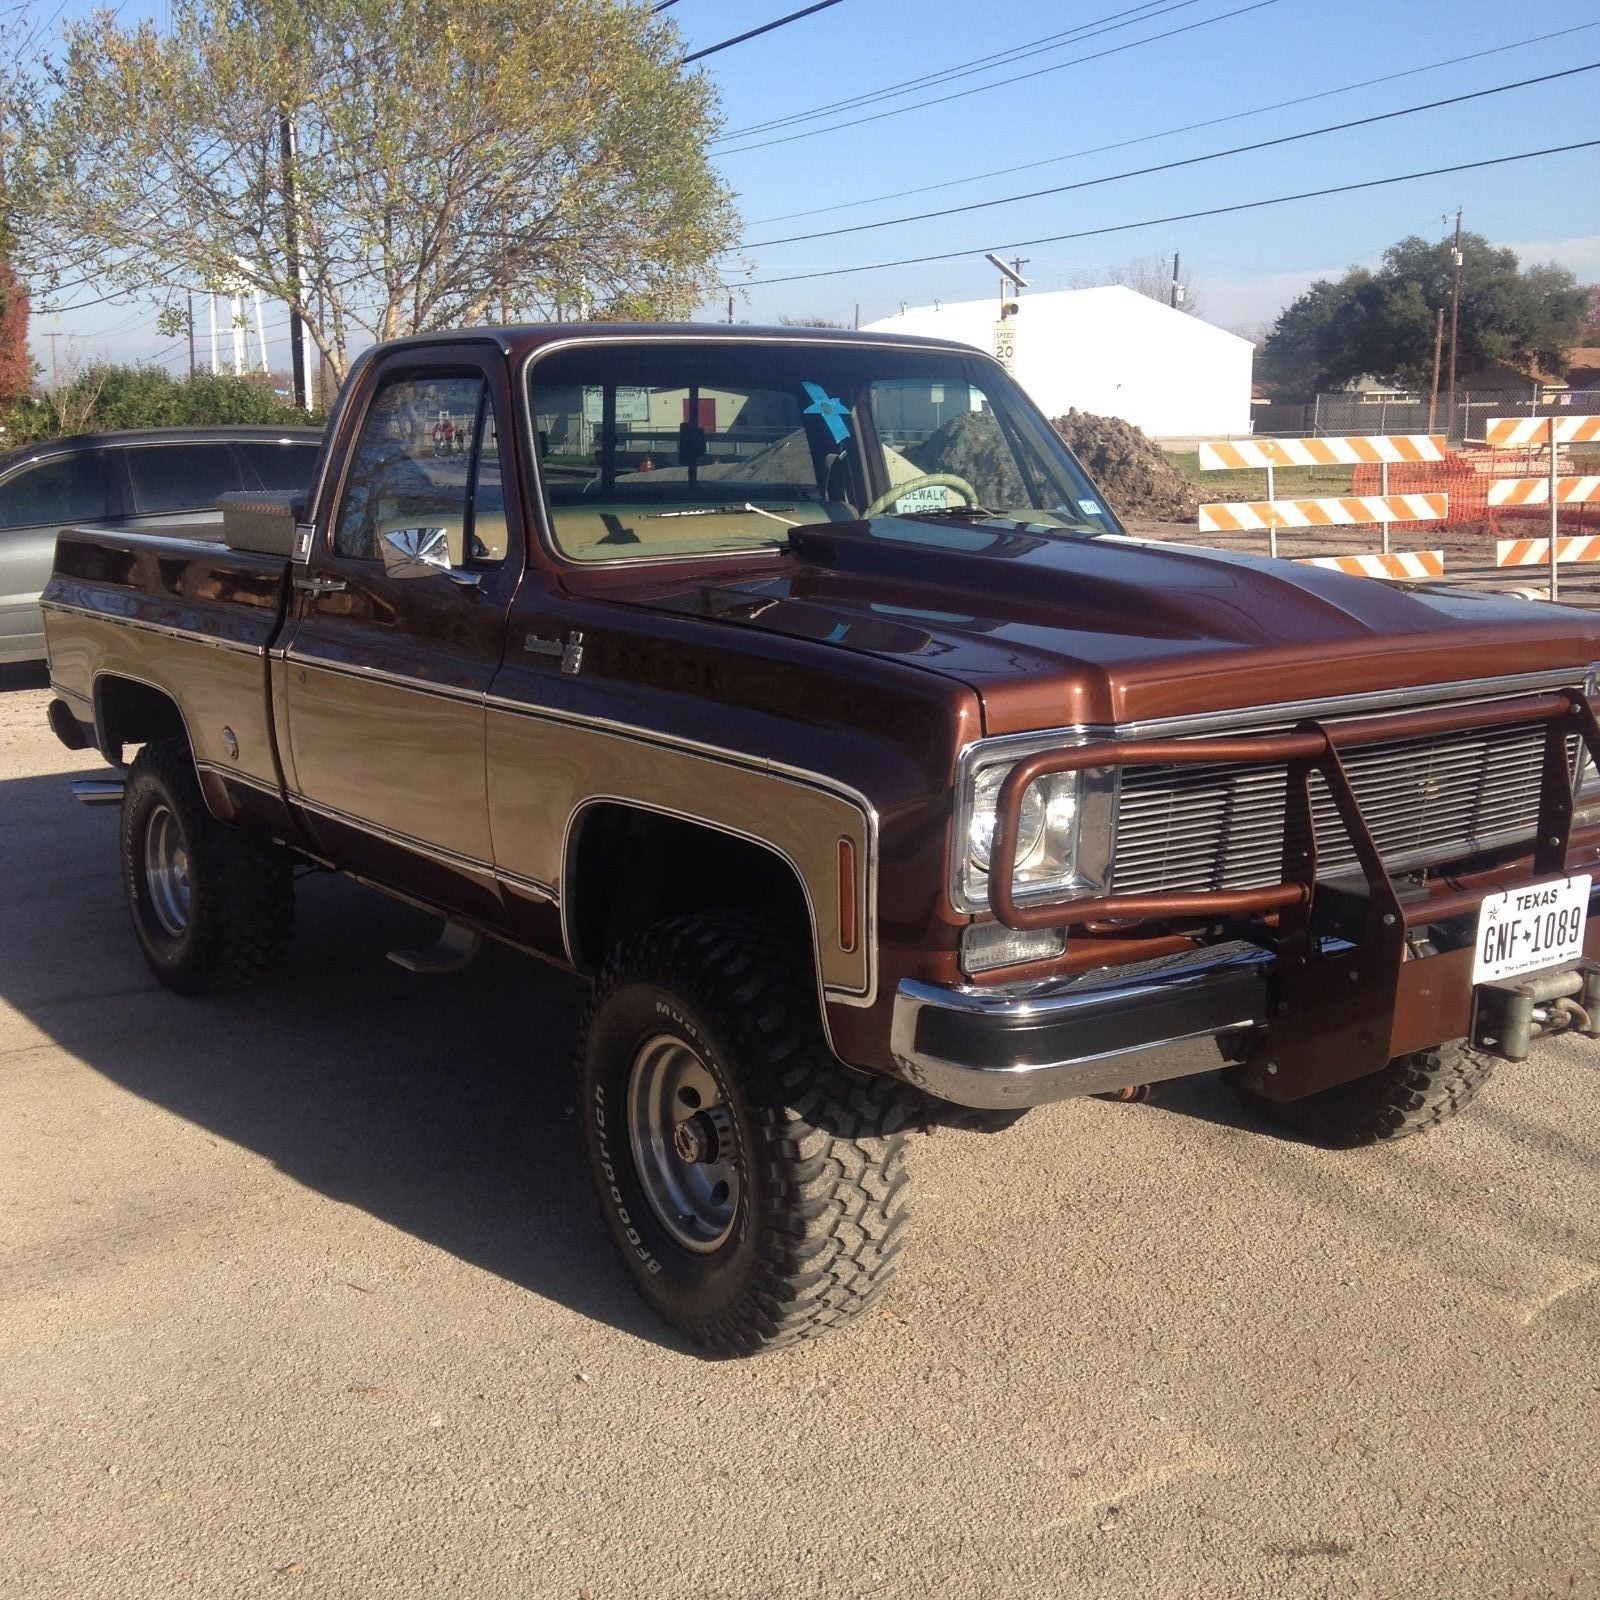 1978 Chevy C10 44 For Sale Make Your Own Beautiful  HD Wallpapers, Images Over 1000+ [ralydesign.ml]